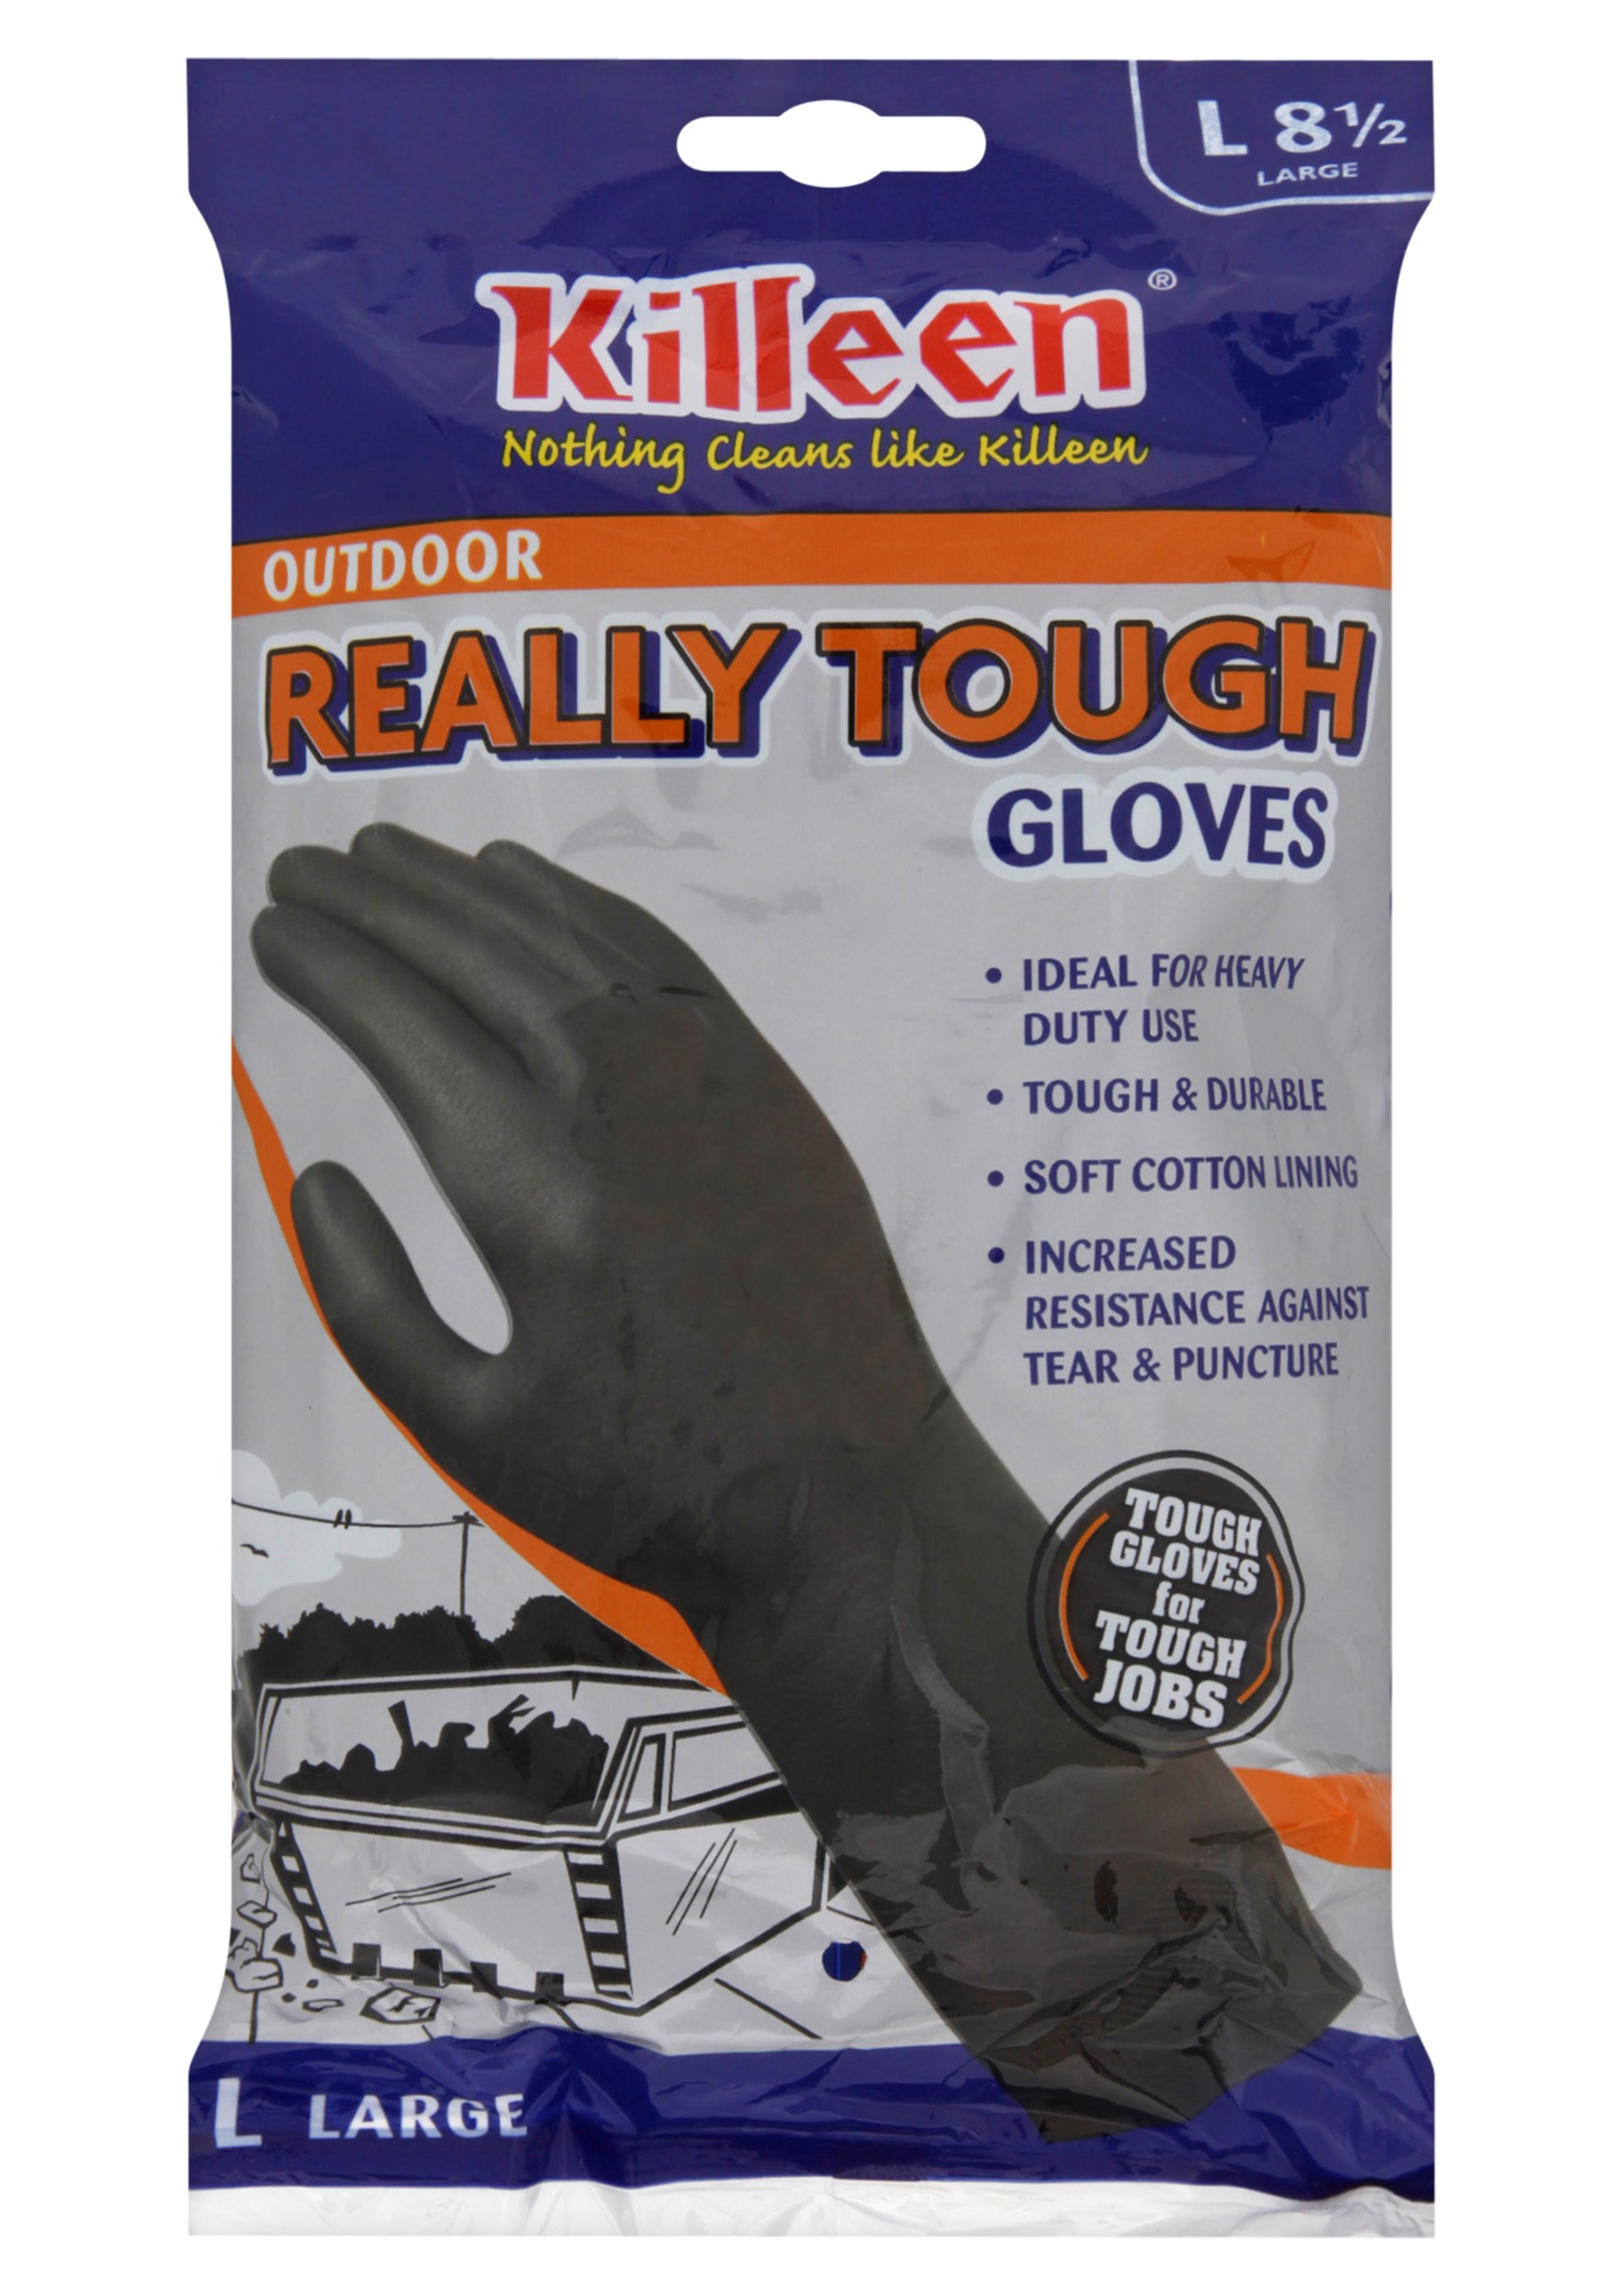 Killeen  Really Tough Outdoor Gloves - Large